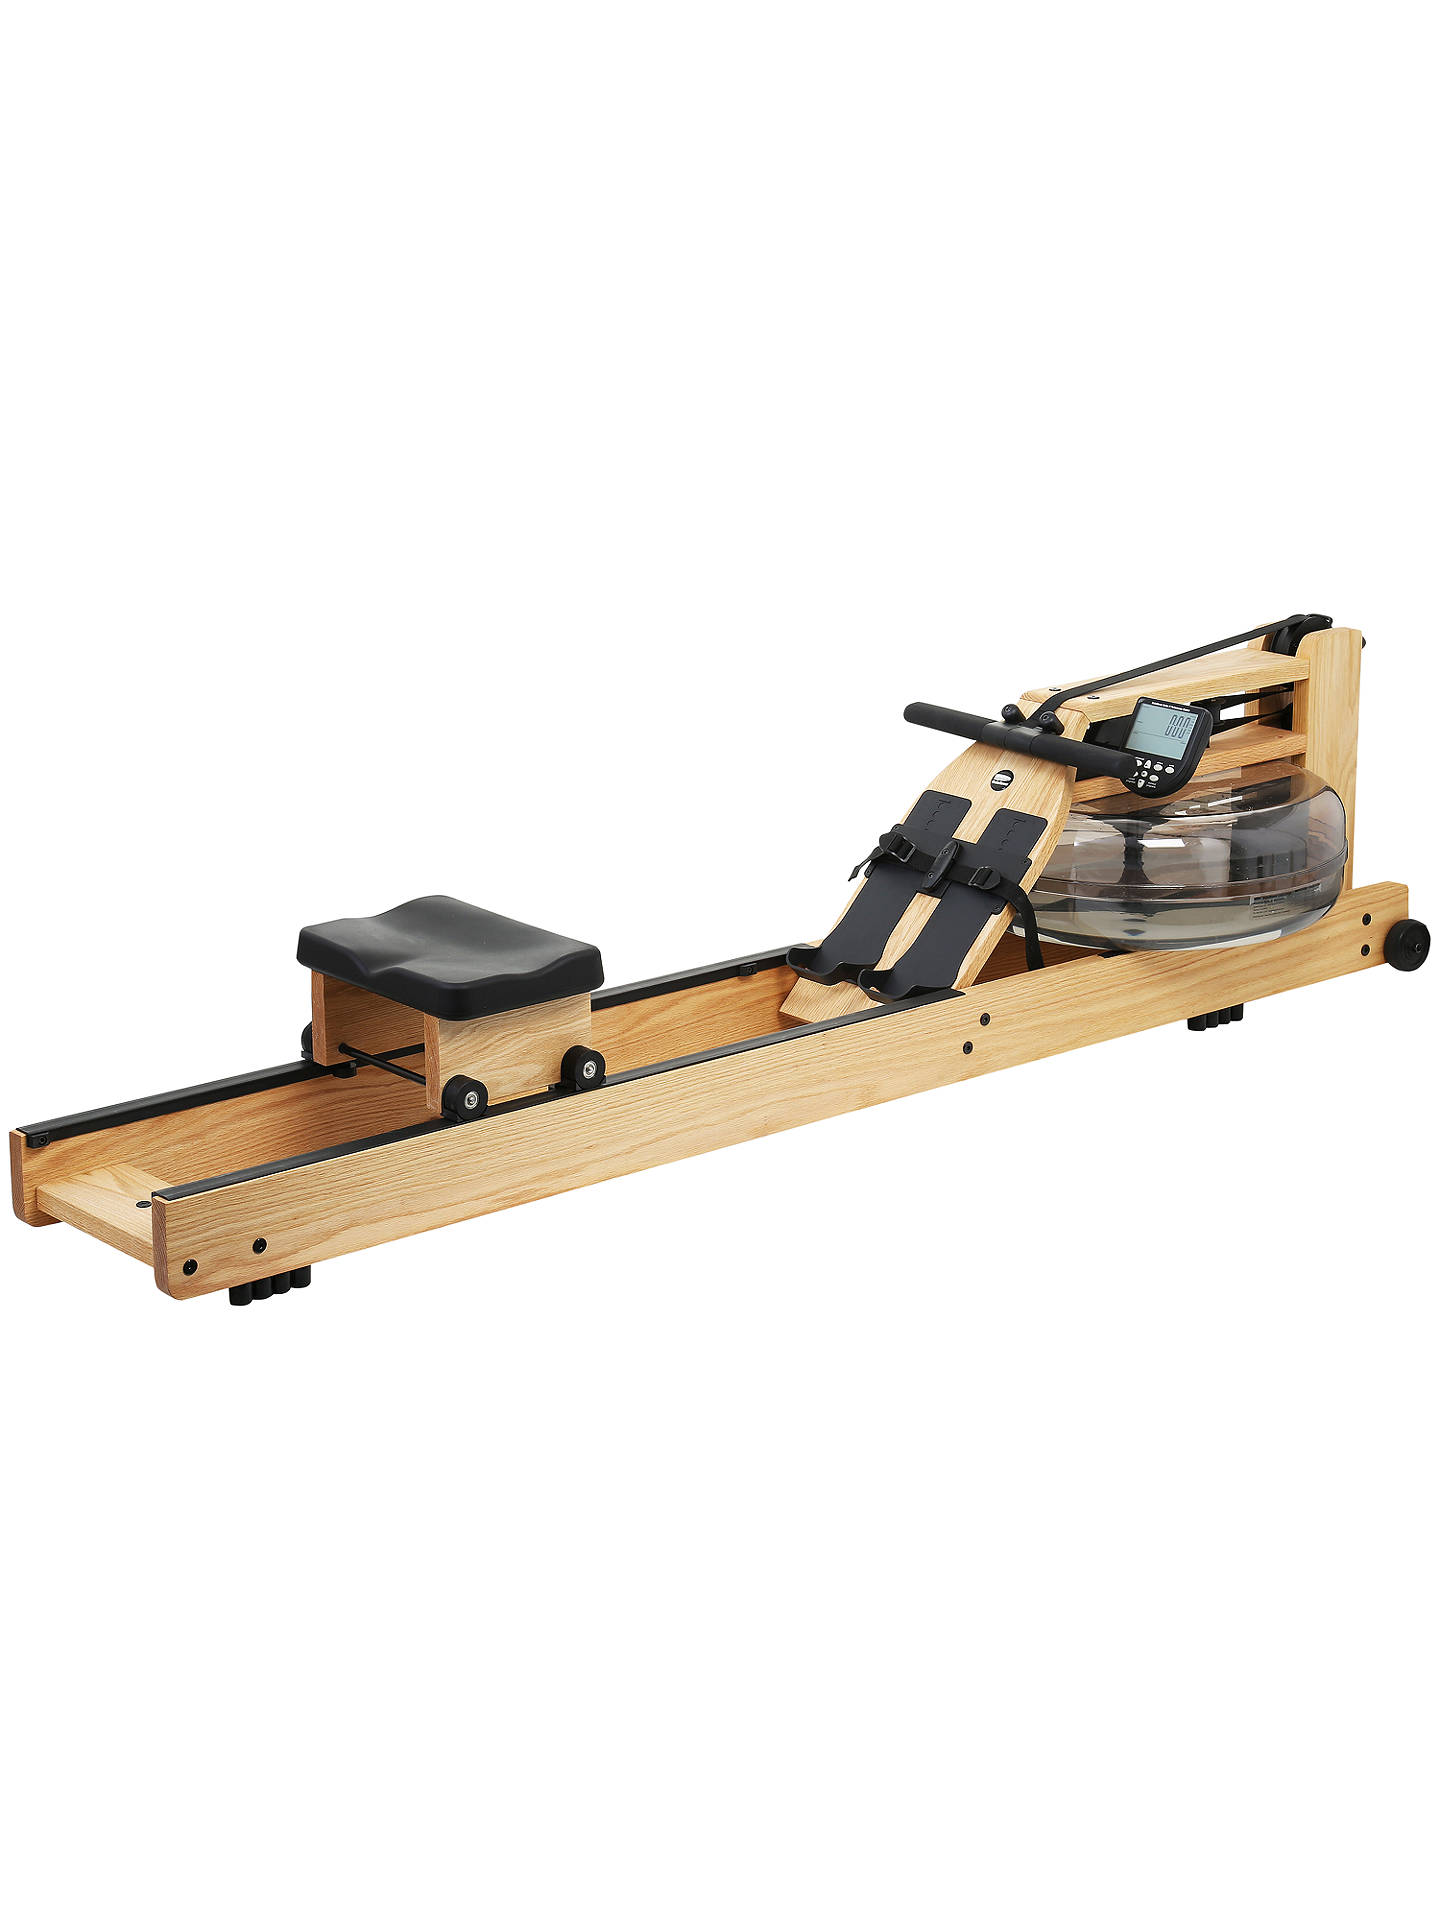 Waterrower Rowing Machine With S4 Performance Monitor Oak